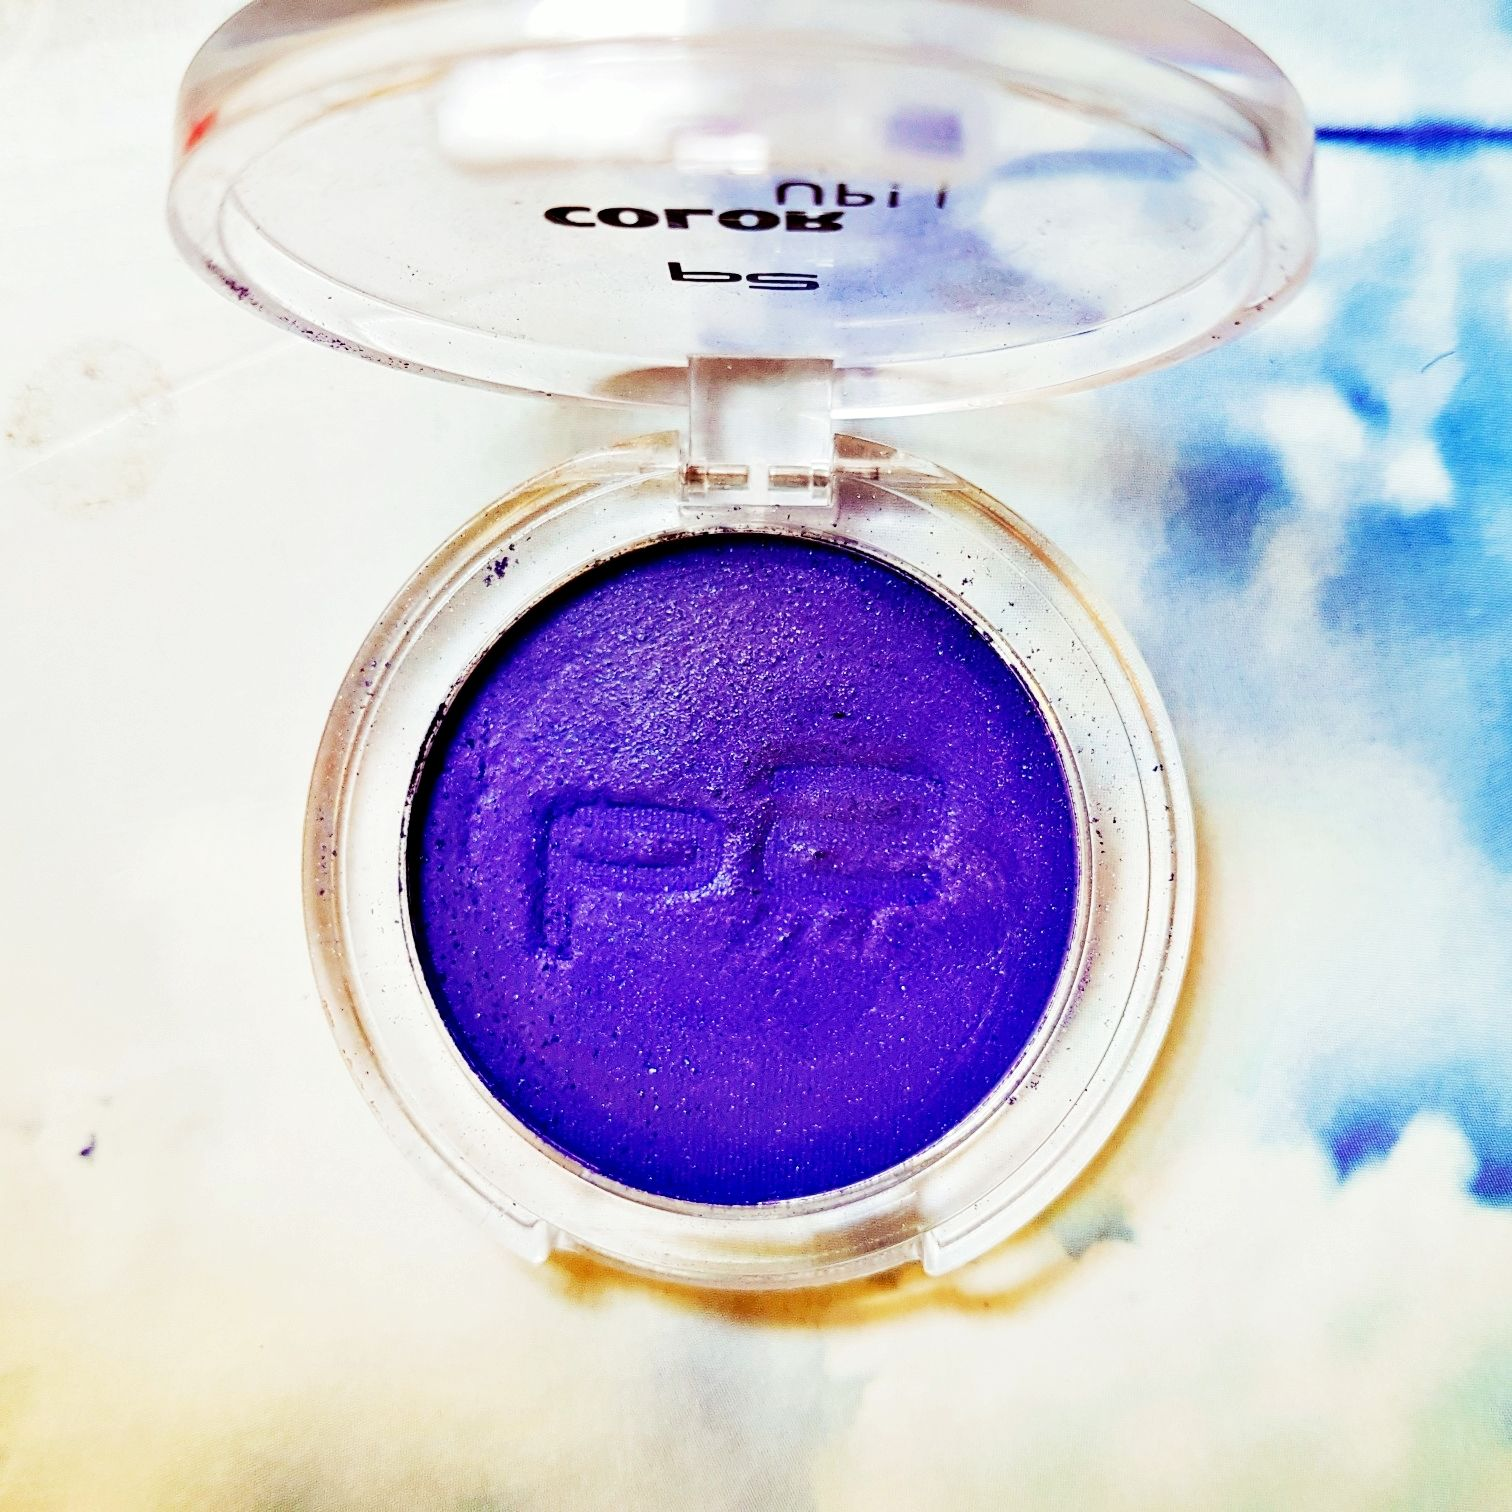 P2 Color Up! eye Shadow Nummer 280 roya tea